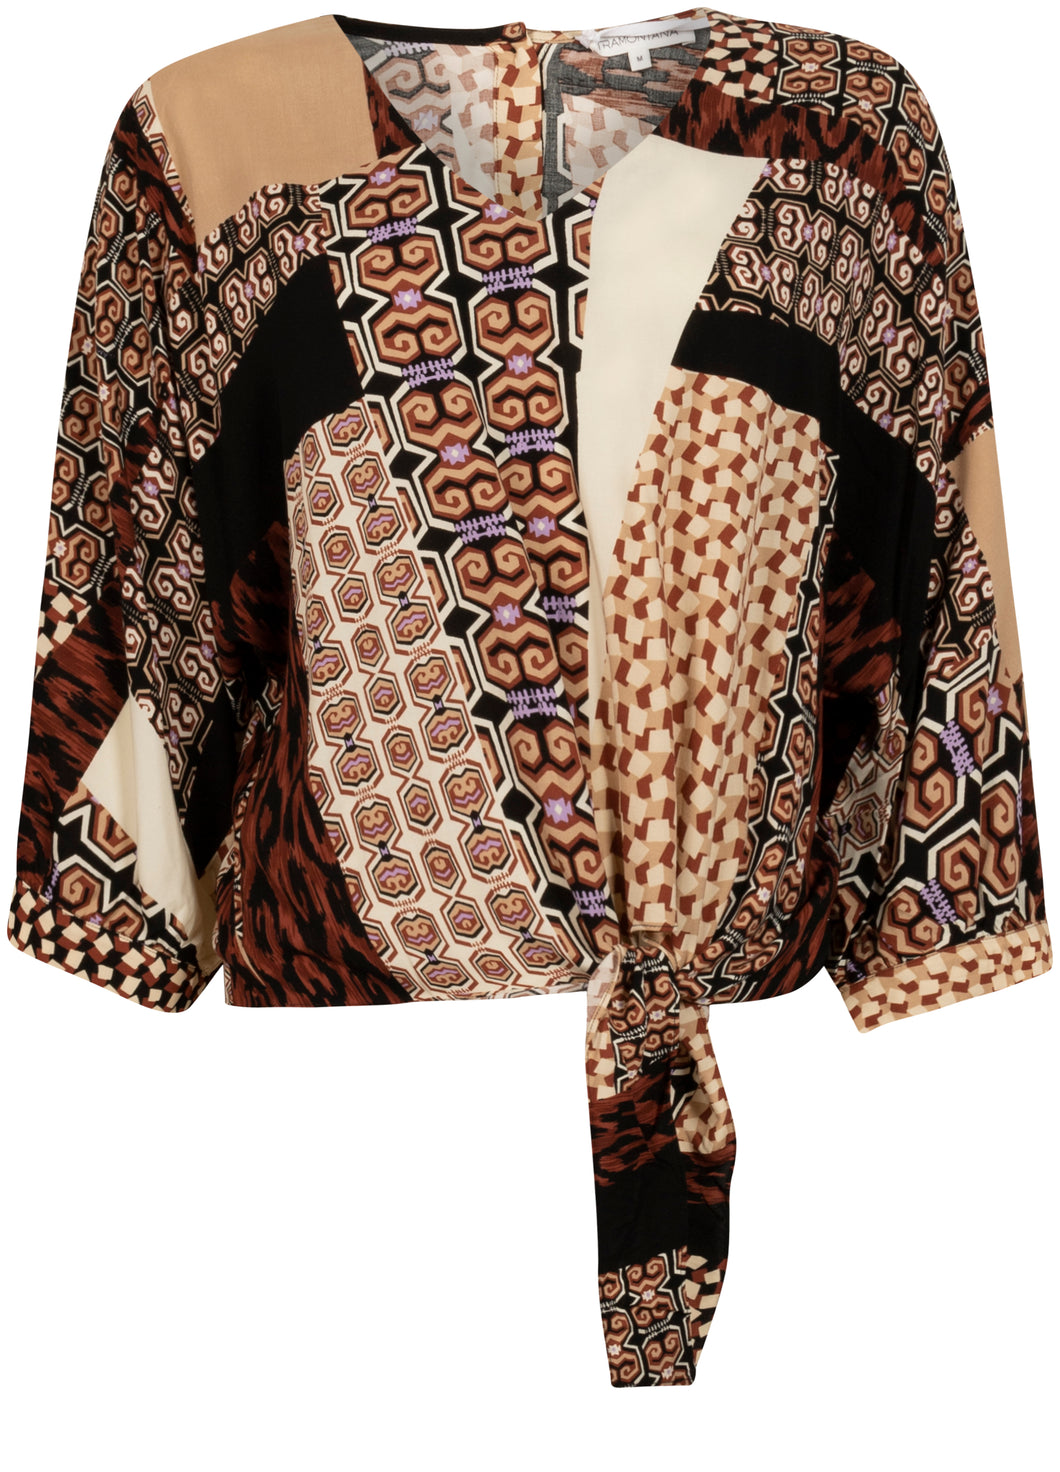 TRAMONTANA TOP KNOT MIXED GRAPHIC PRINT BROWNS